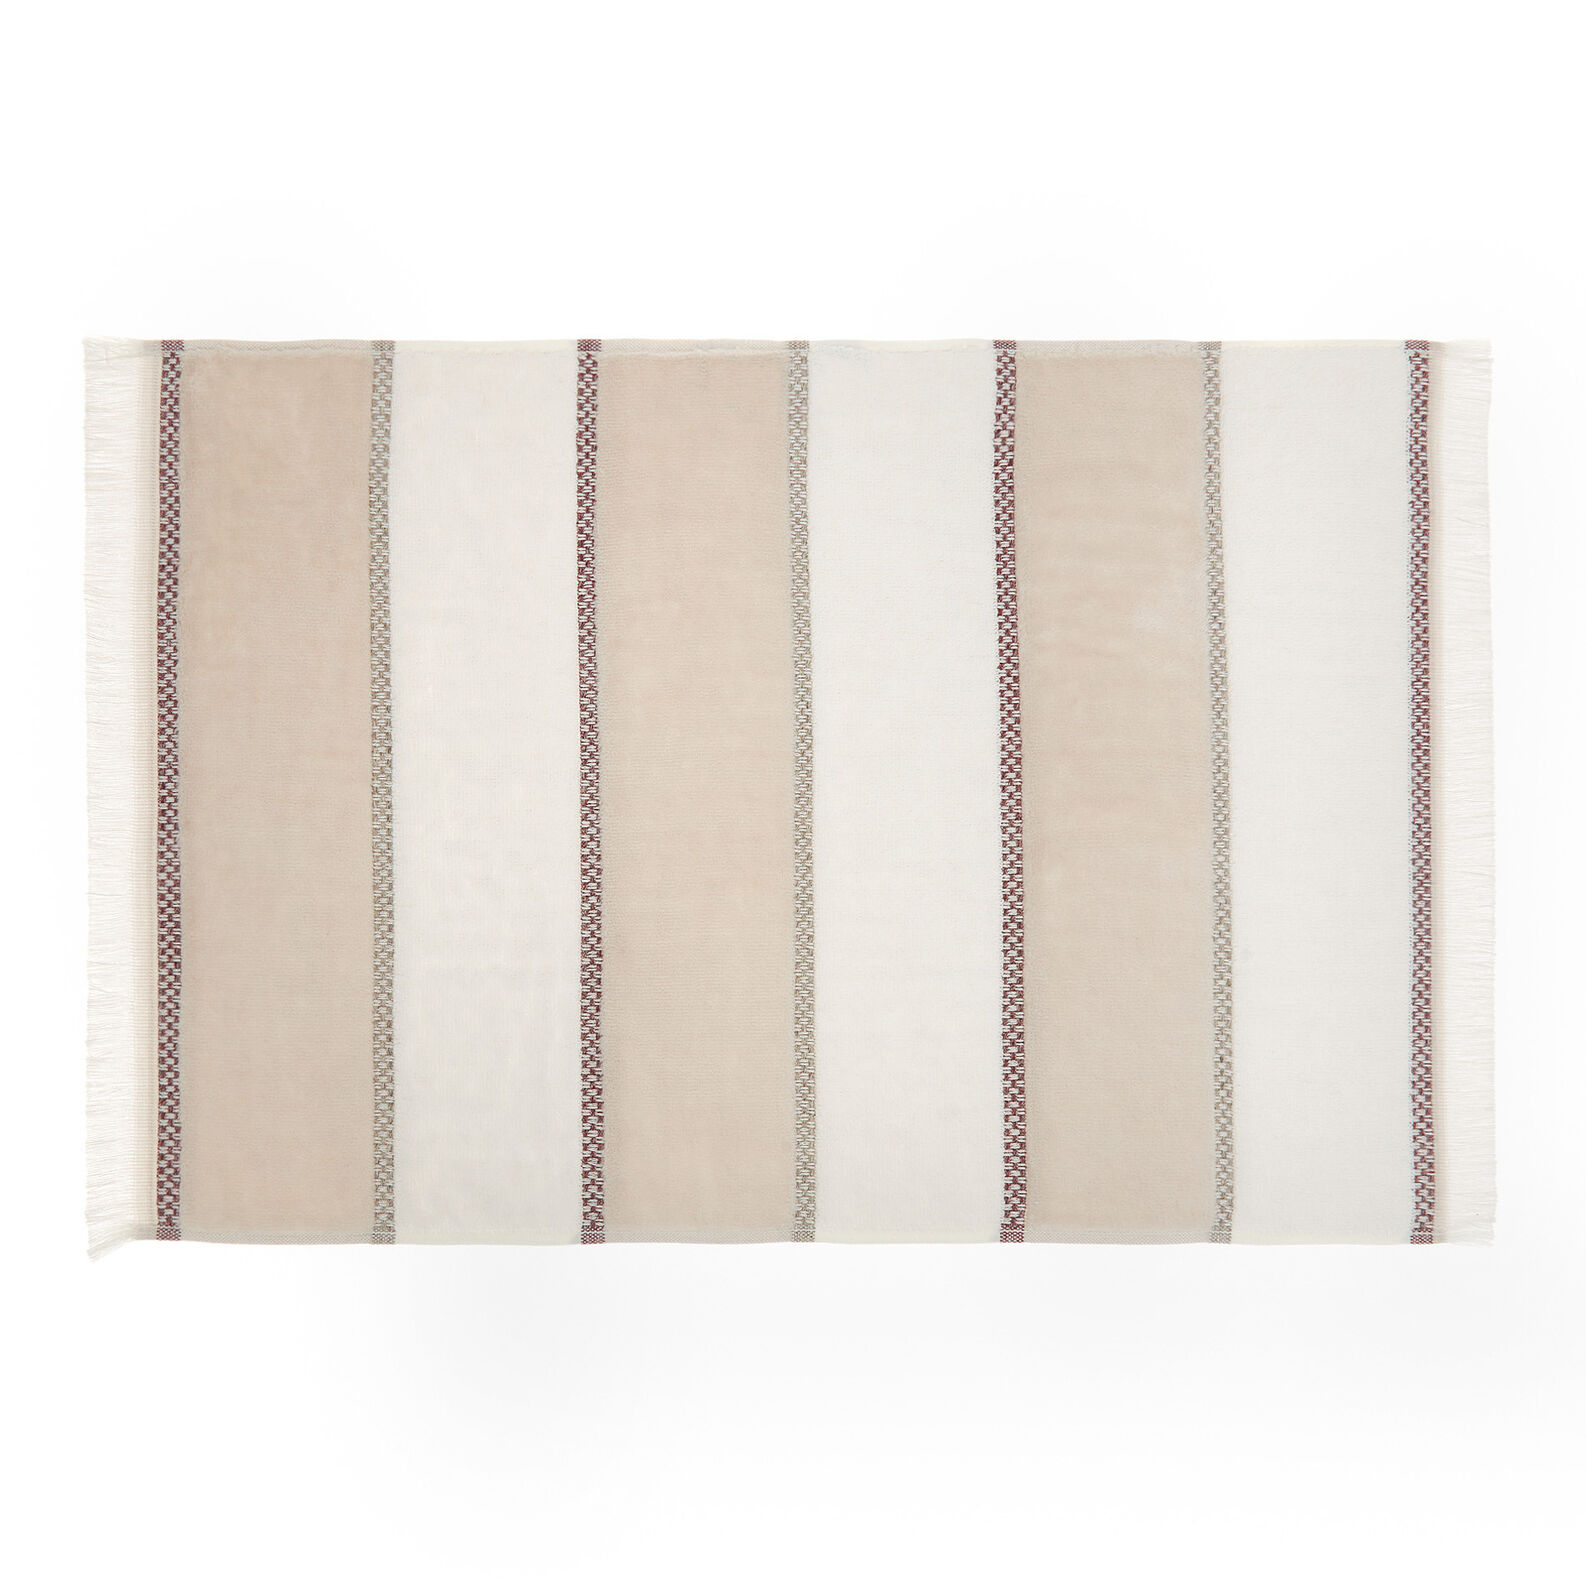 Cotton terry towel with striped motif